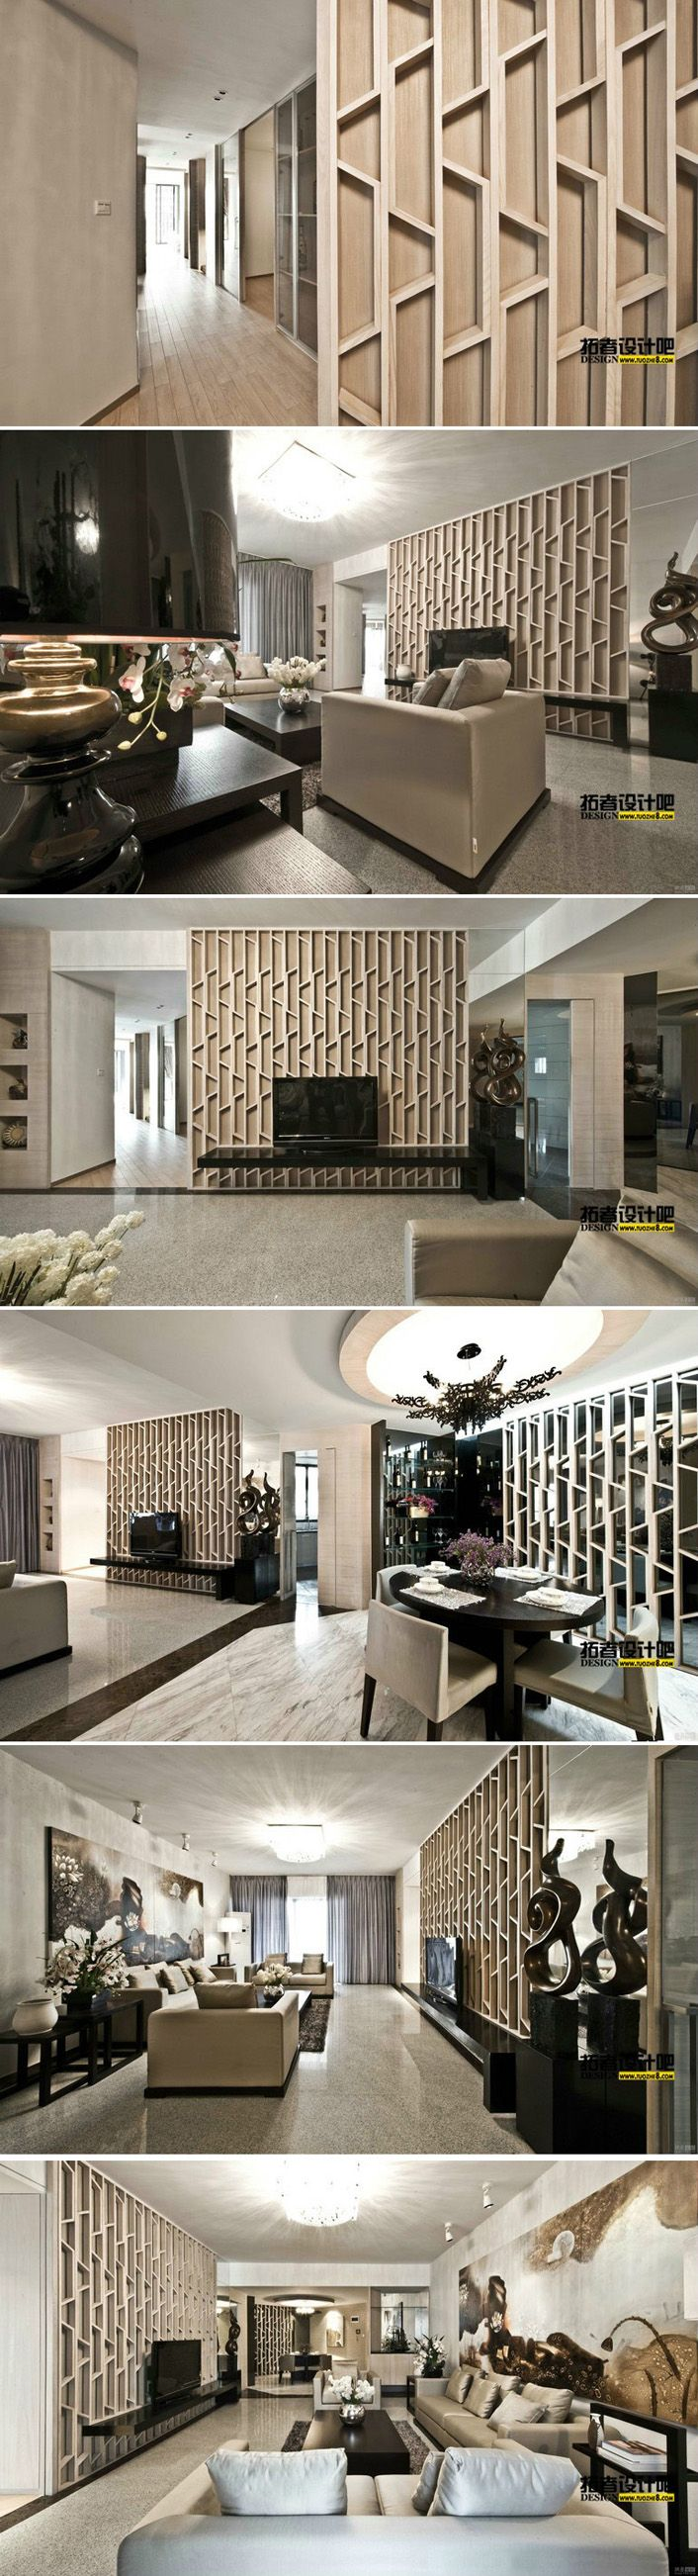 Modern_Contemporary_Interior_Design